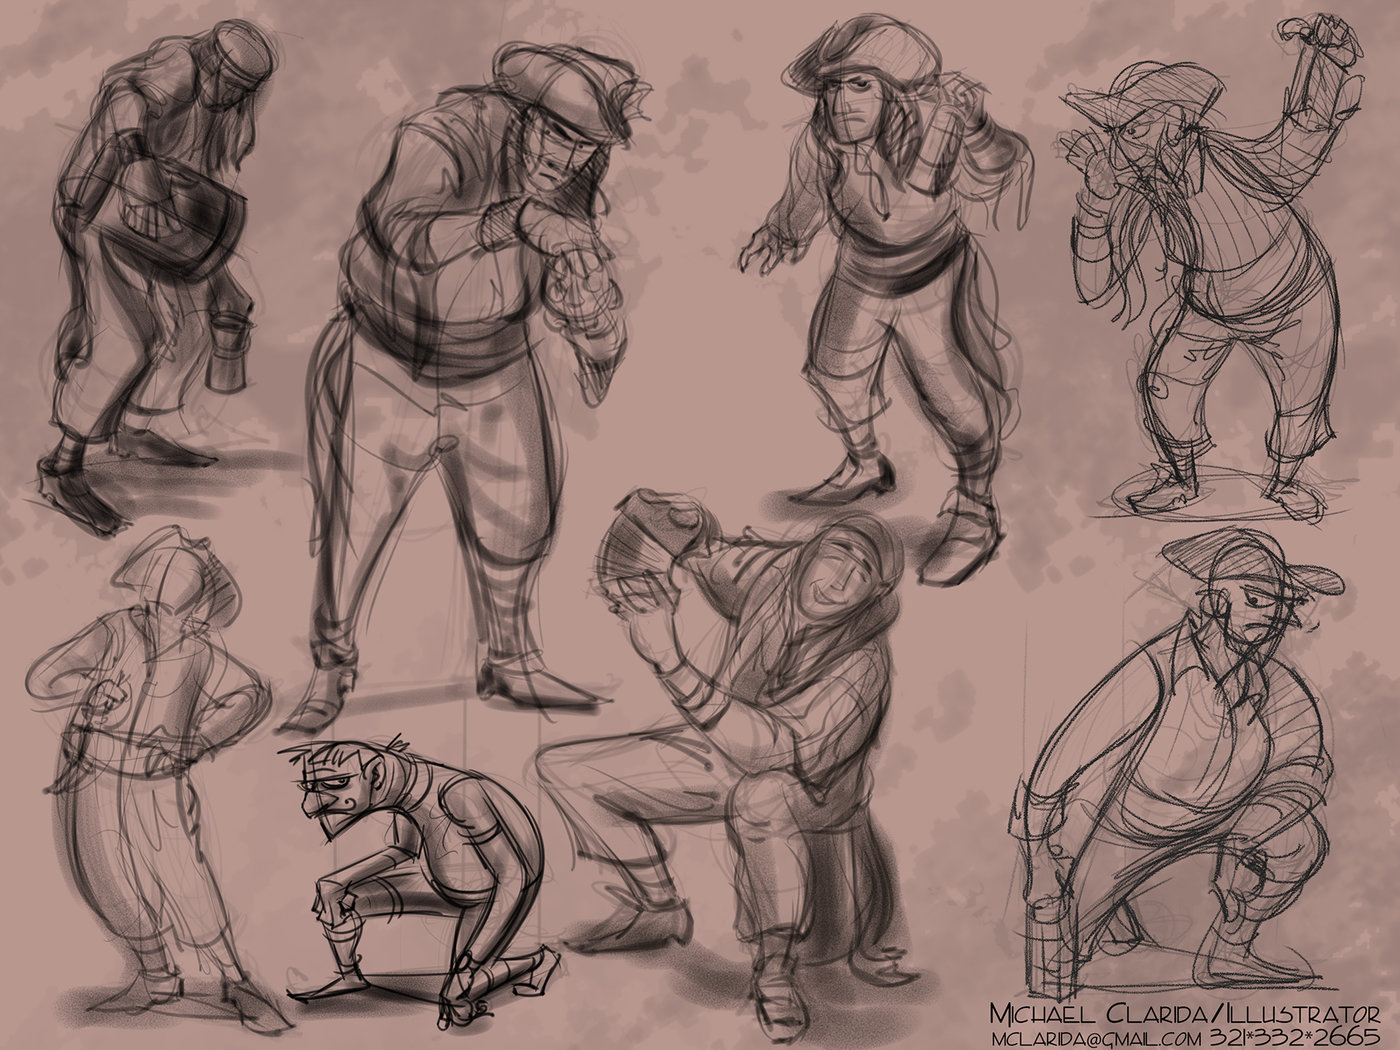 Gesture drawings and figure observation by Mike Clarida at